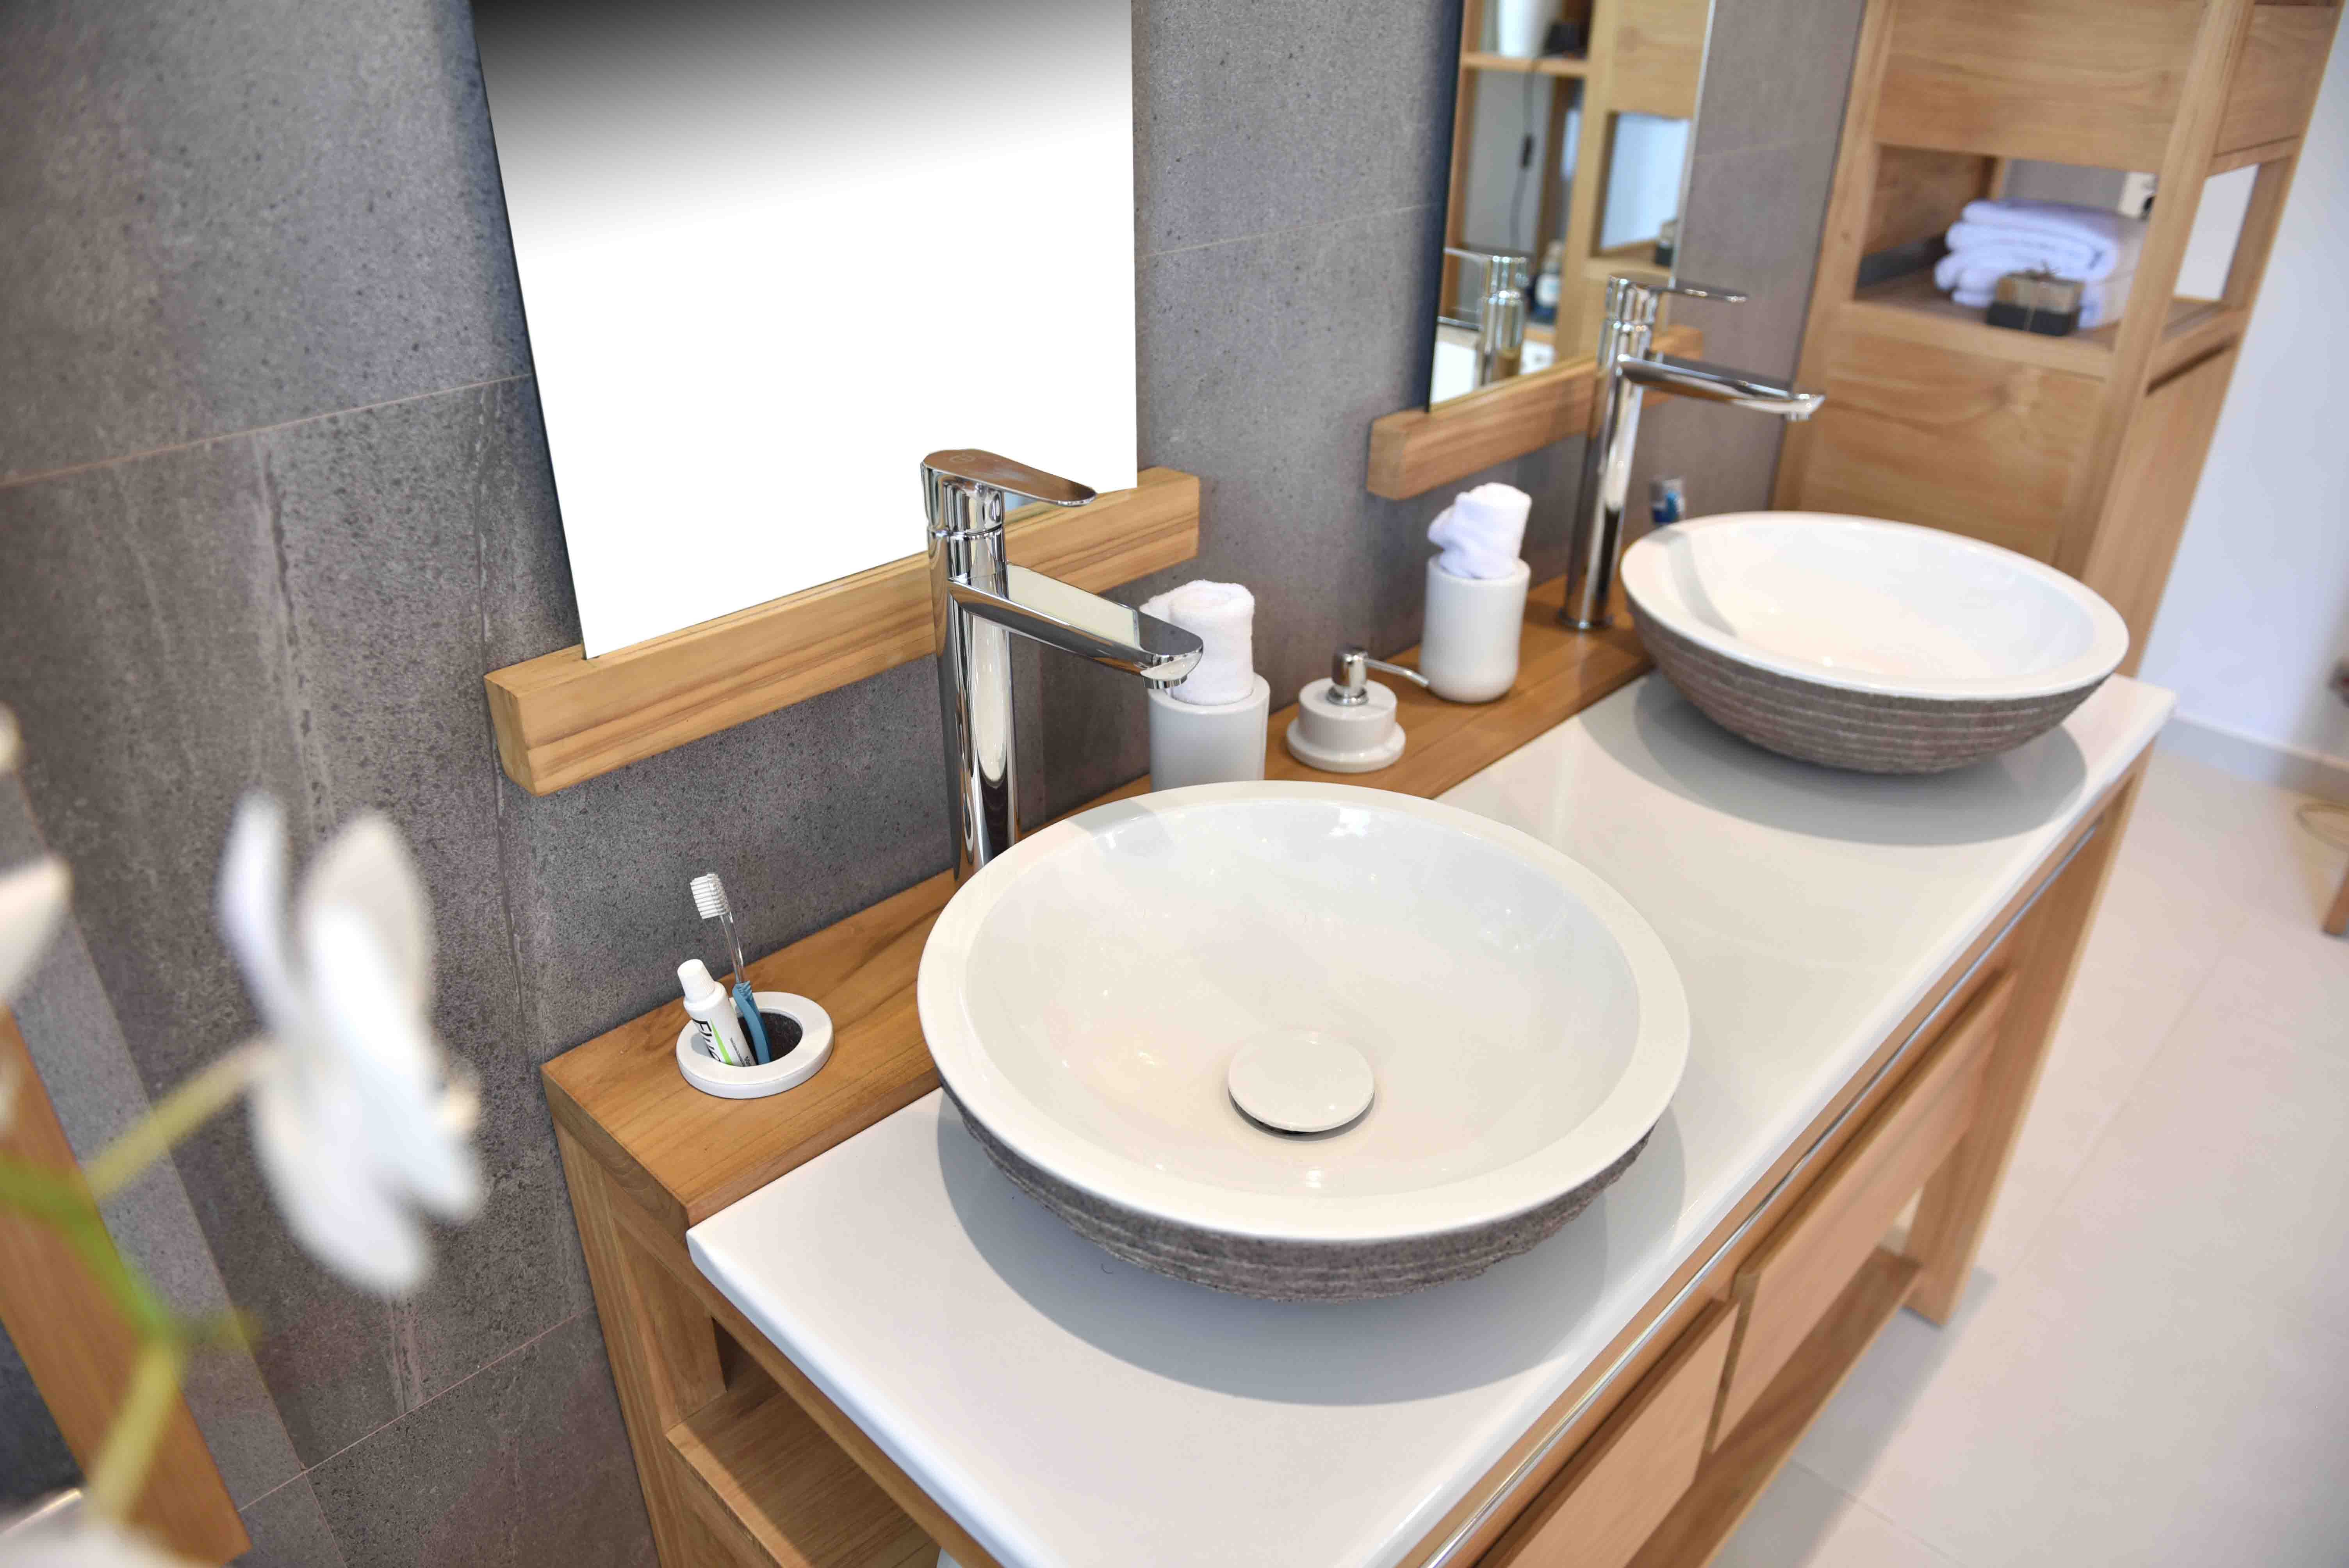 Set-blanc-double-sink-suoh-130-mirrors-furniture-bois-teak-nature-couleur-lave-volcan-émaille-céramique-France-Luxe